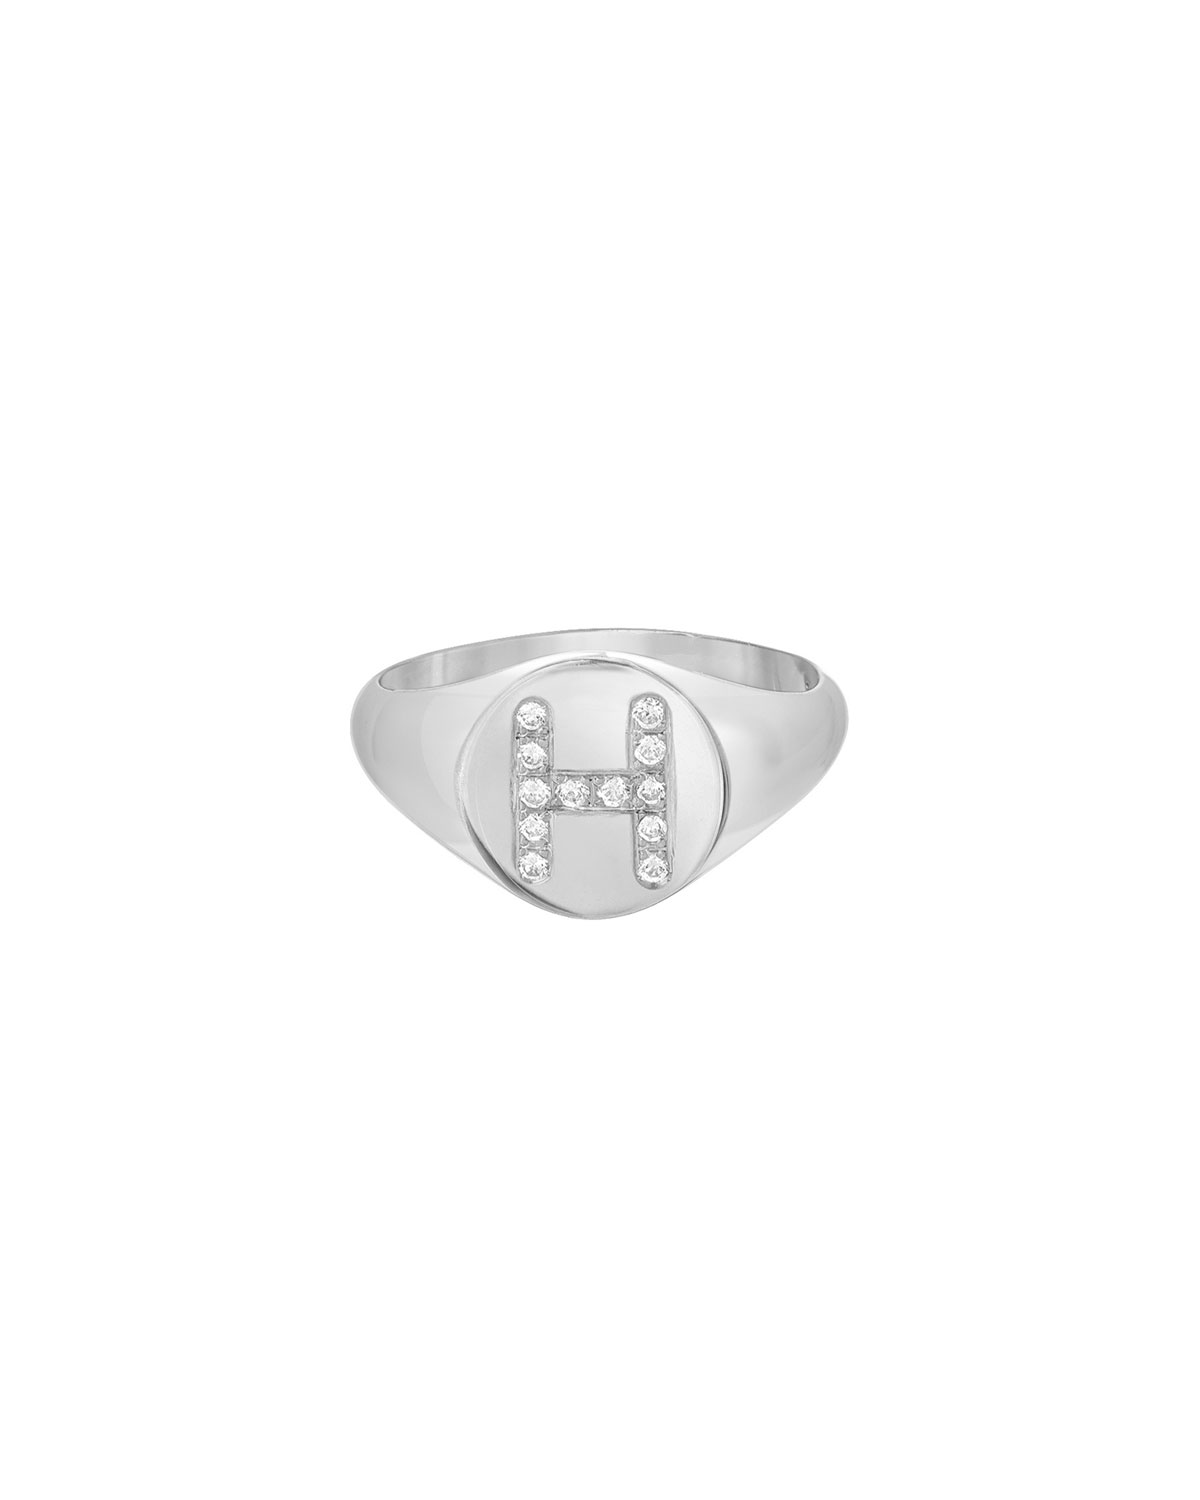 ZOE LEV JEWELRY SMALL PERSONALIZED DIAMOND INITIAL SIGNET RING, 14K WHITE GOLD